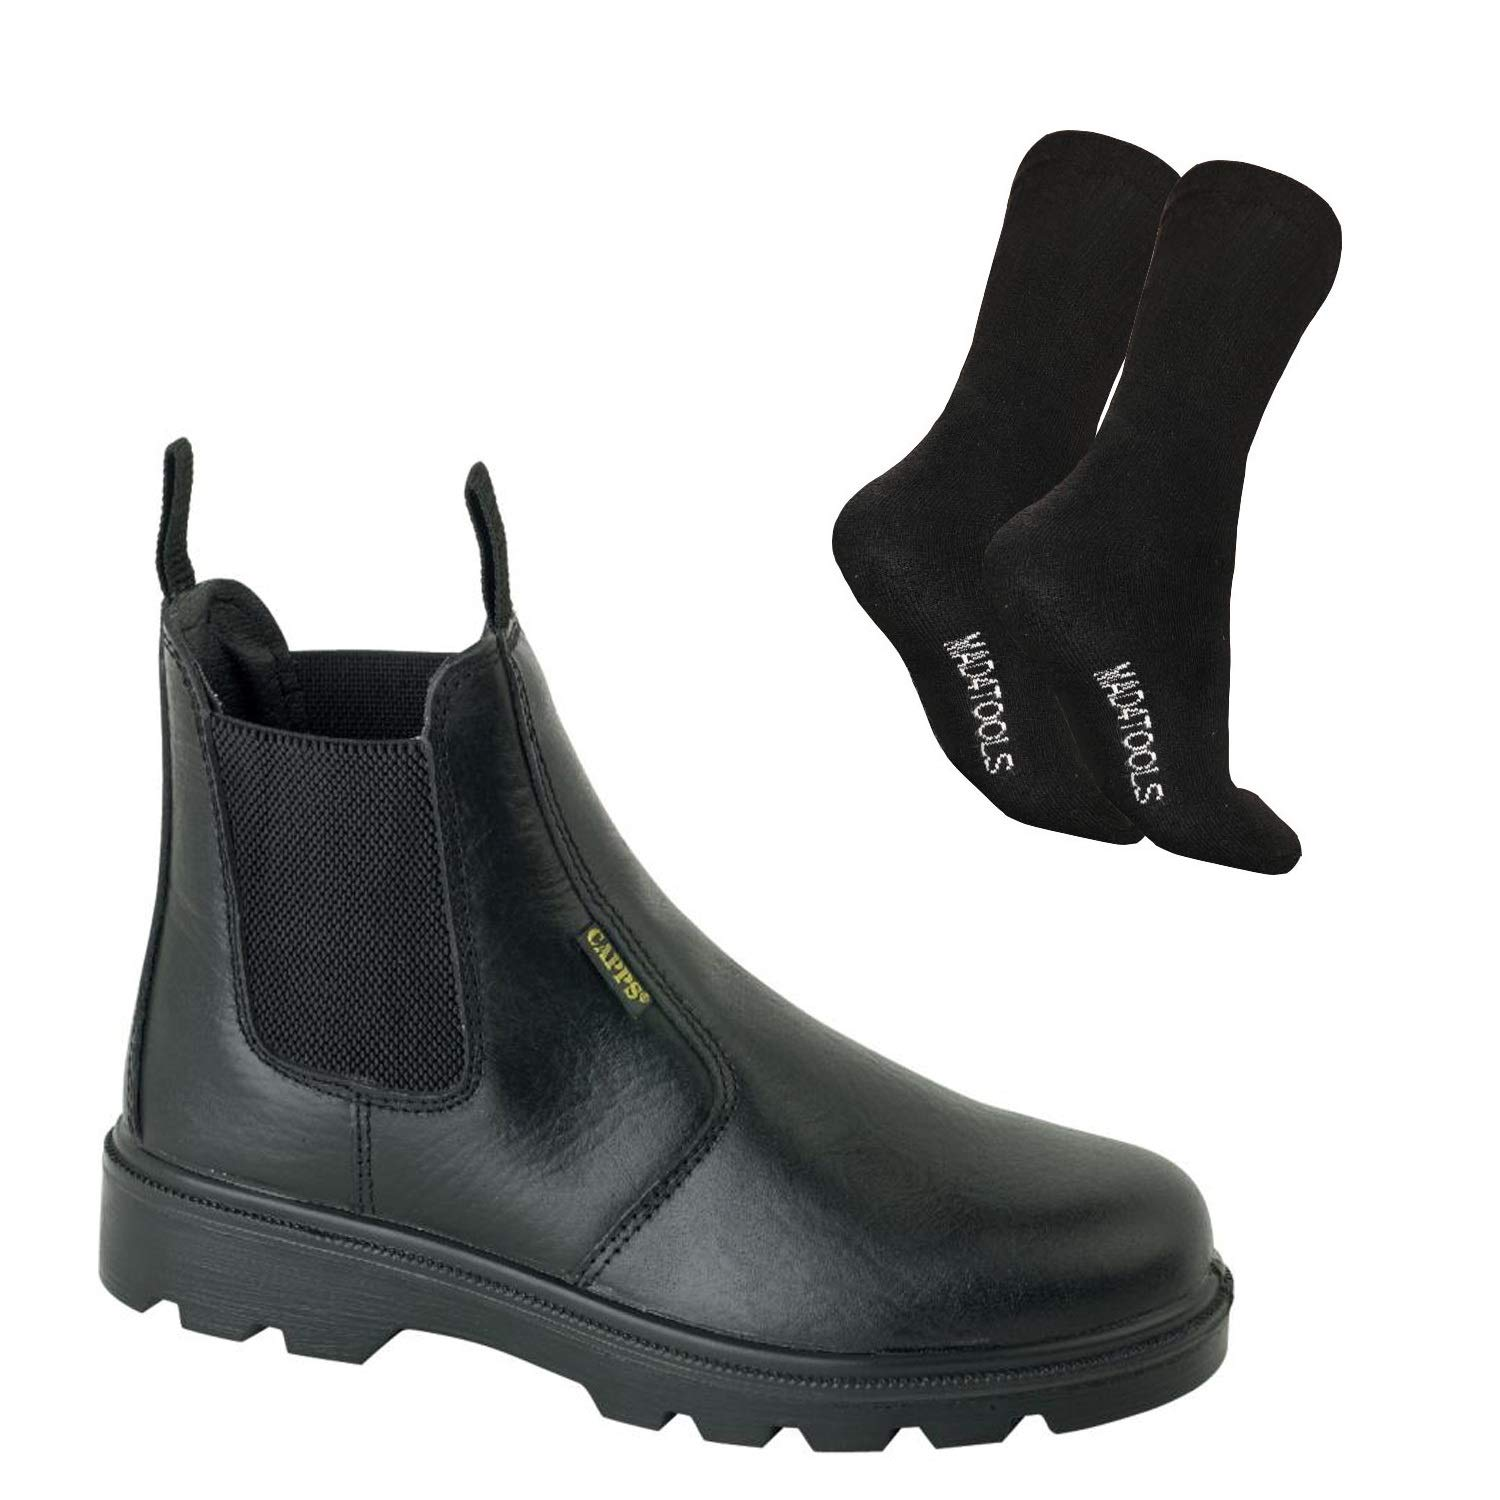 94dd556d6ee LH829 Dealer Safety Boots & mad4tools Work Socks: Amazon.co.uk ...